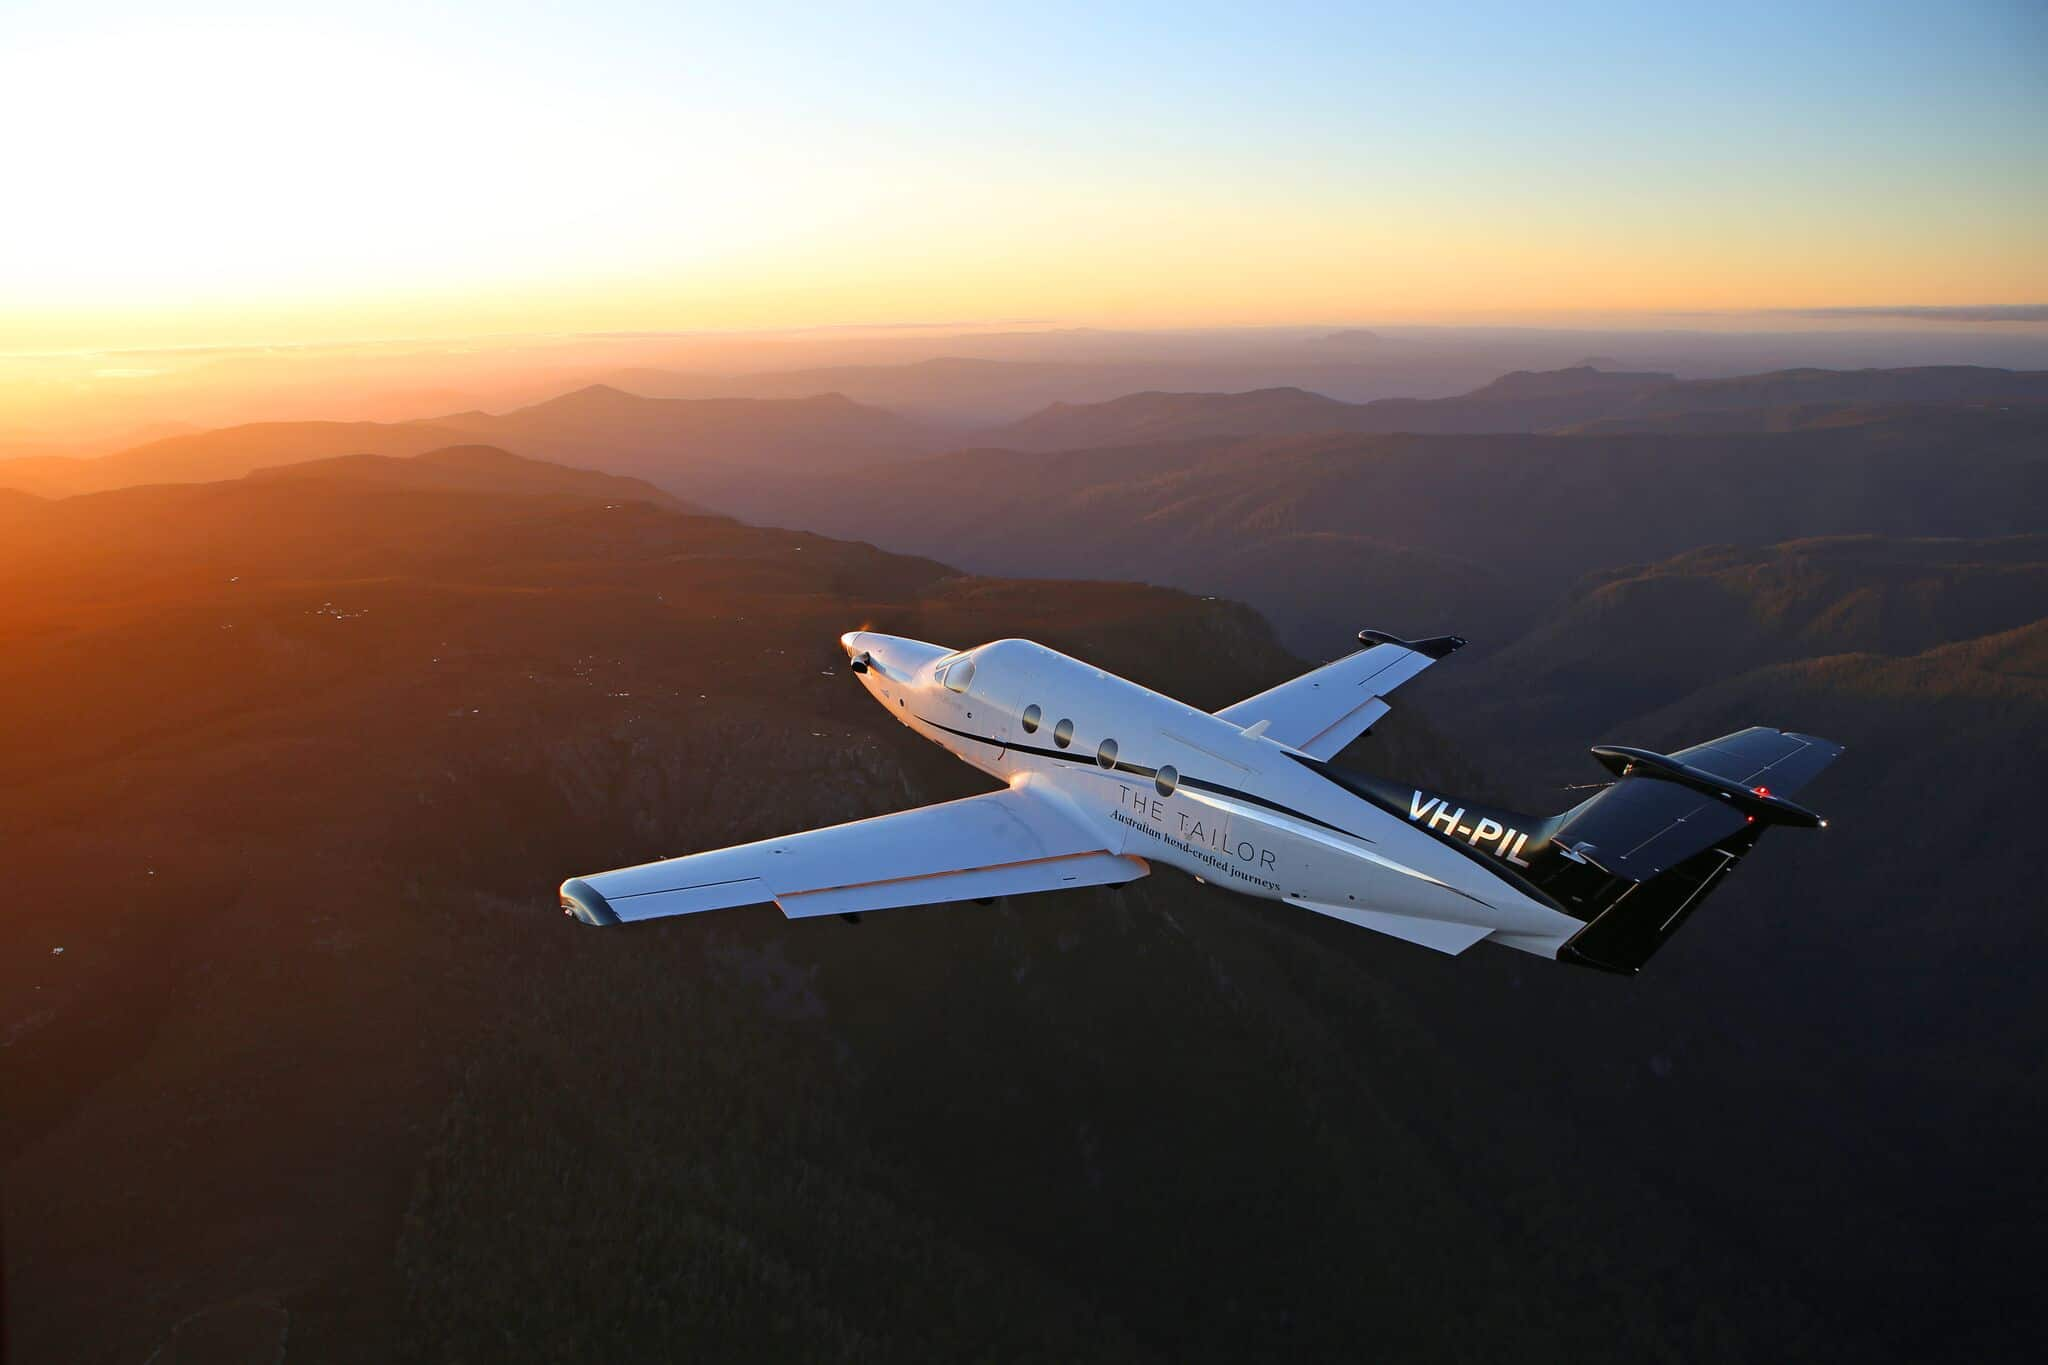 A Pilatus PC12 Fly's high above the mountains off into the sunset